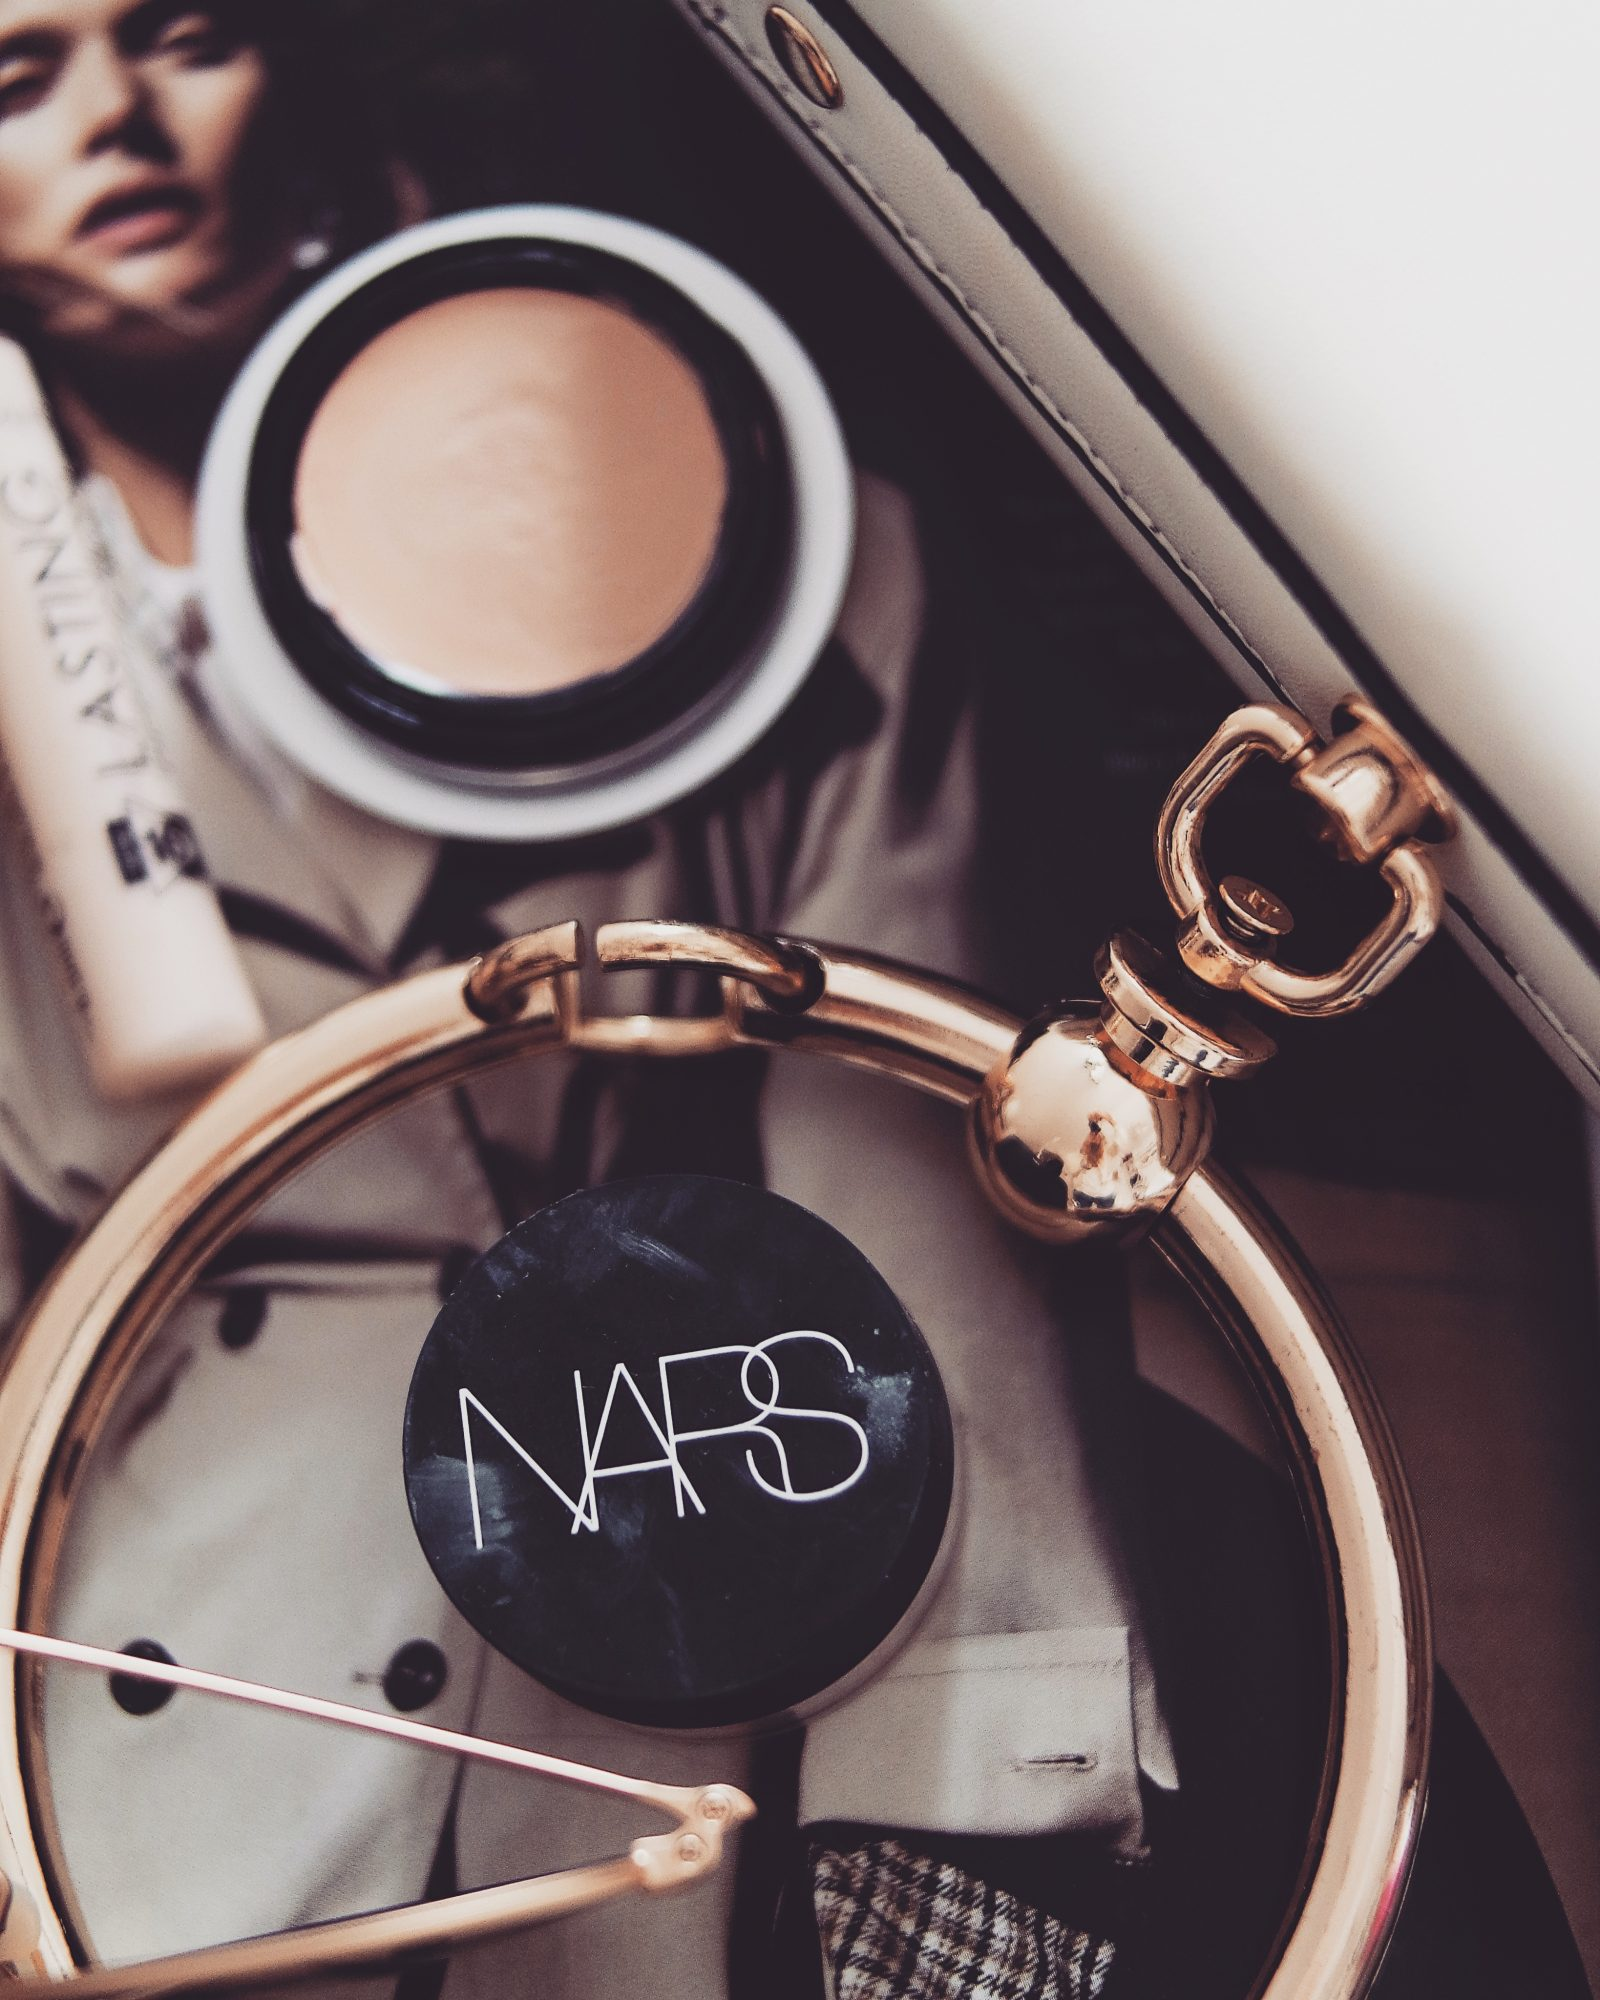 Best Concealers | The Beauty Five